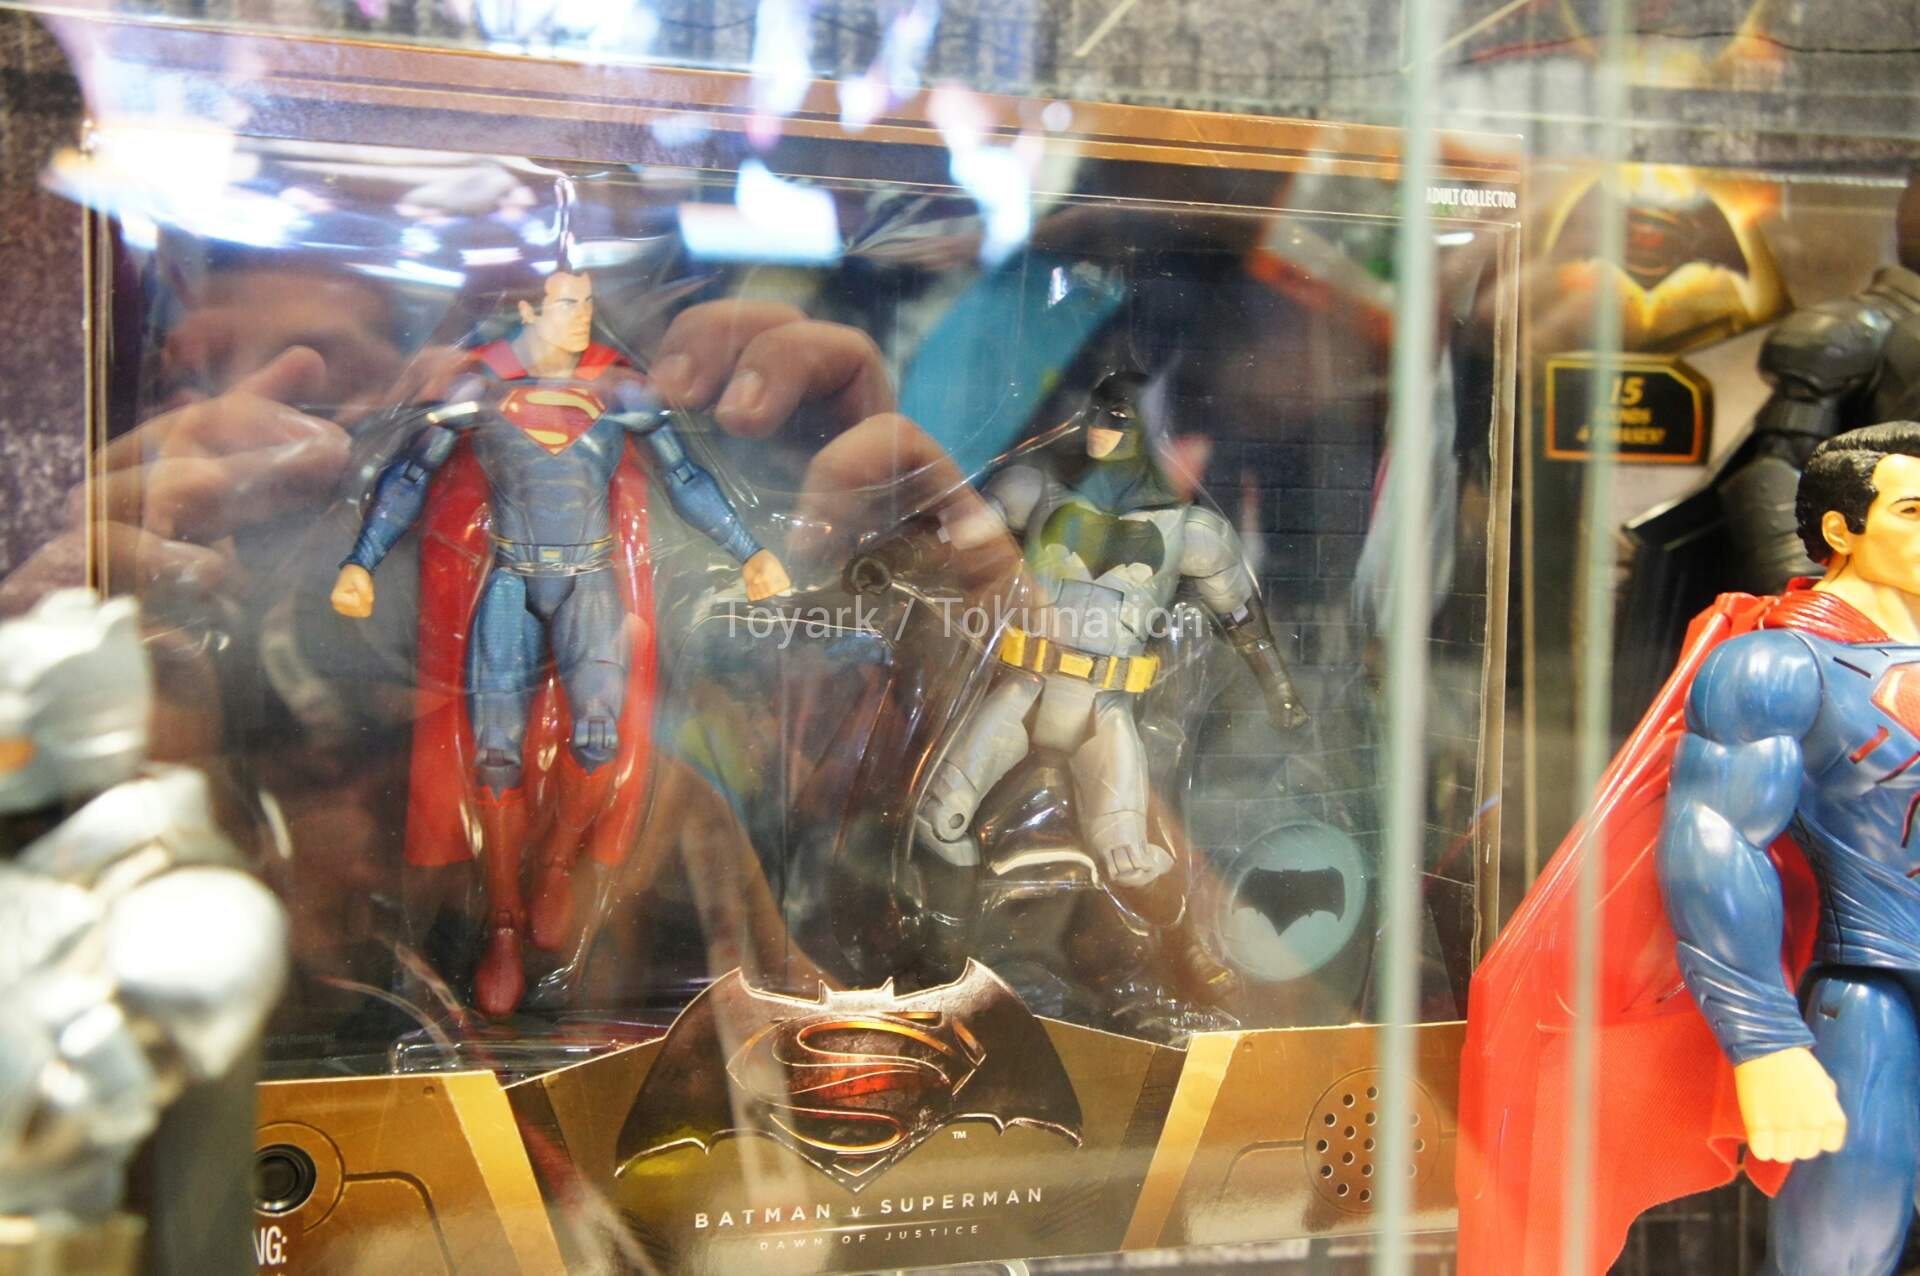 [CINEMA] [Tópico Oficial]Batman v. Superman - Barbara Gordon confirmada! - Página 7 SDCC2015-Mattel-Batman-v-Superman-129